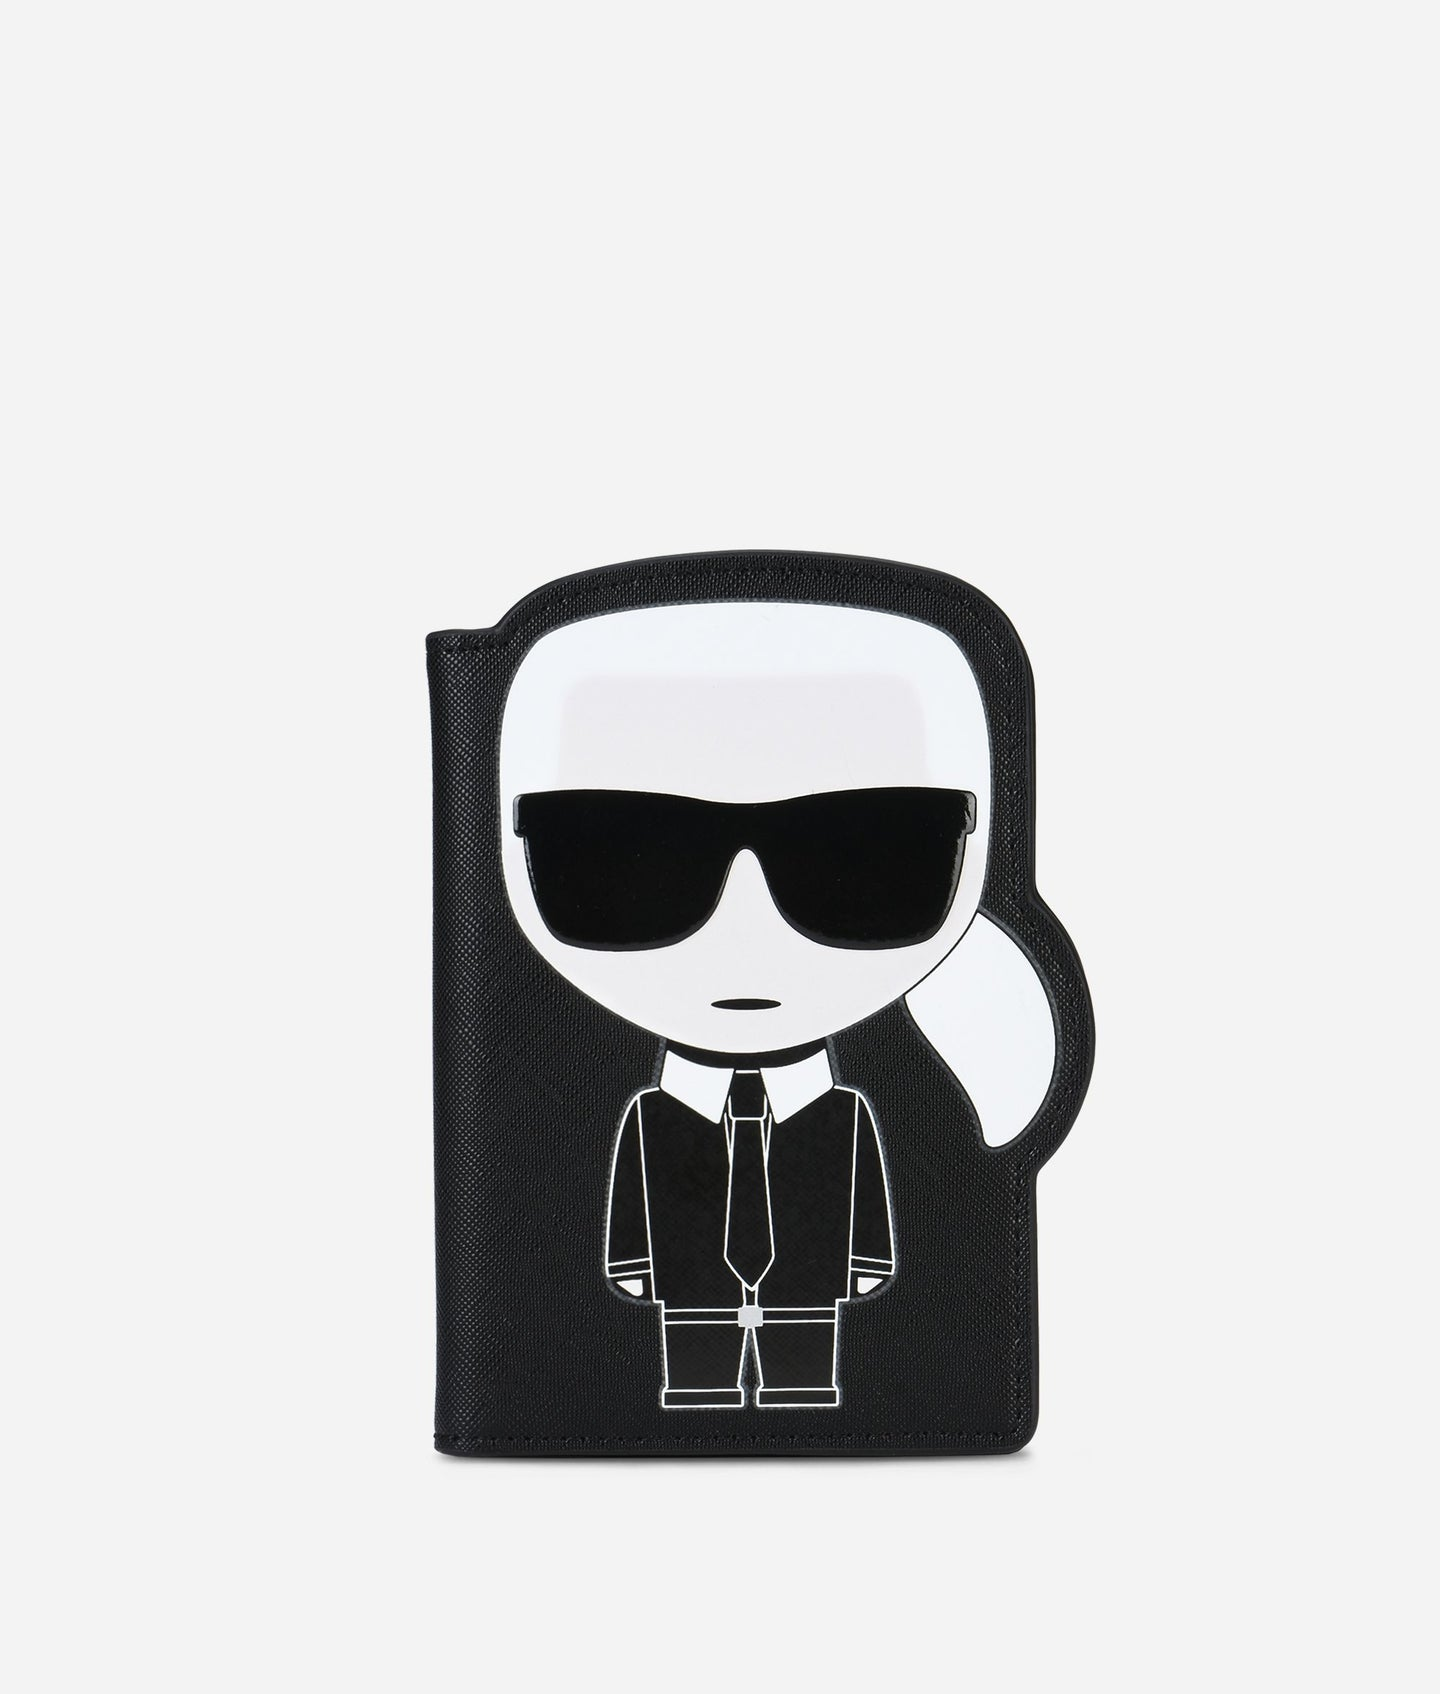 K/IKONIK PASSPORT HOLDER